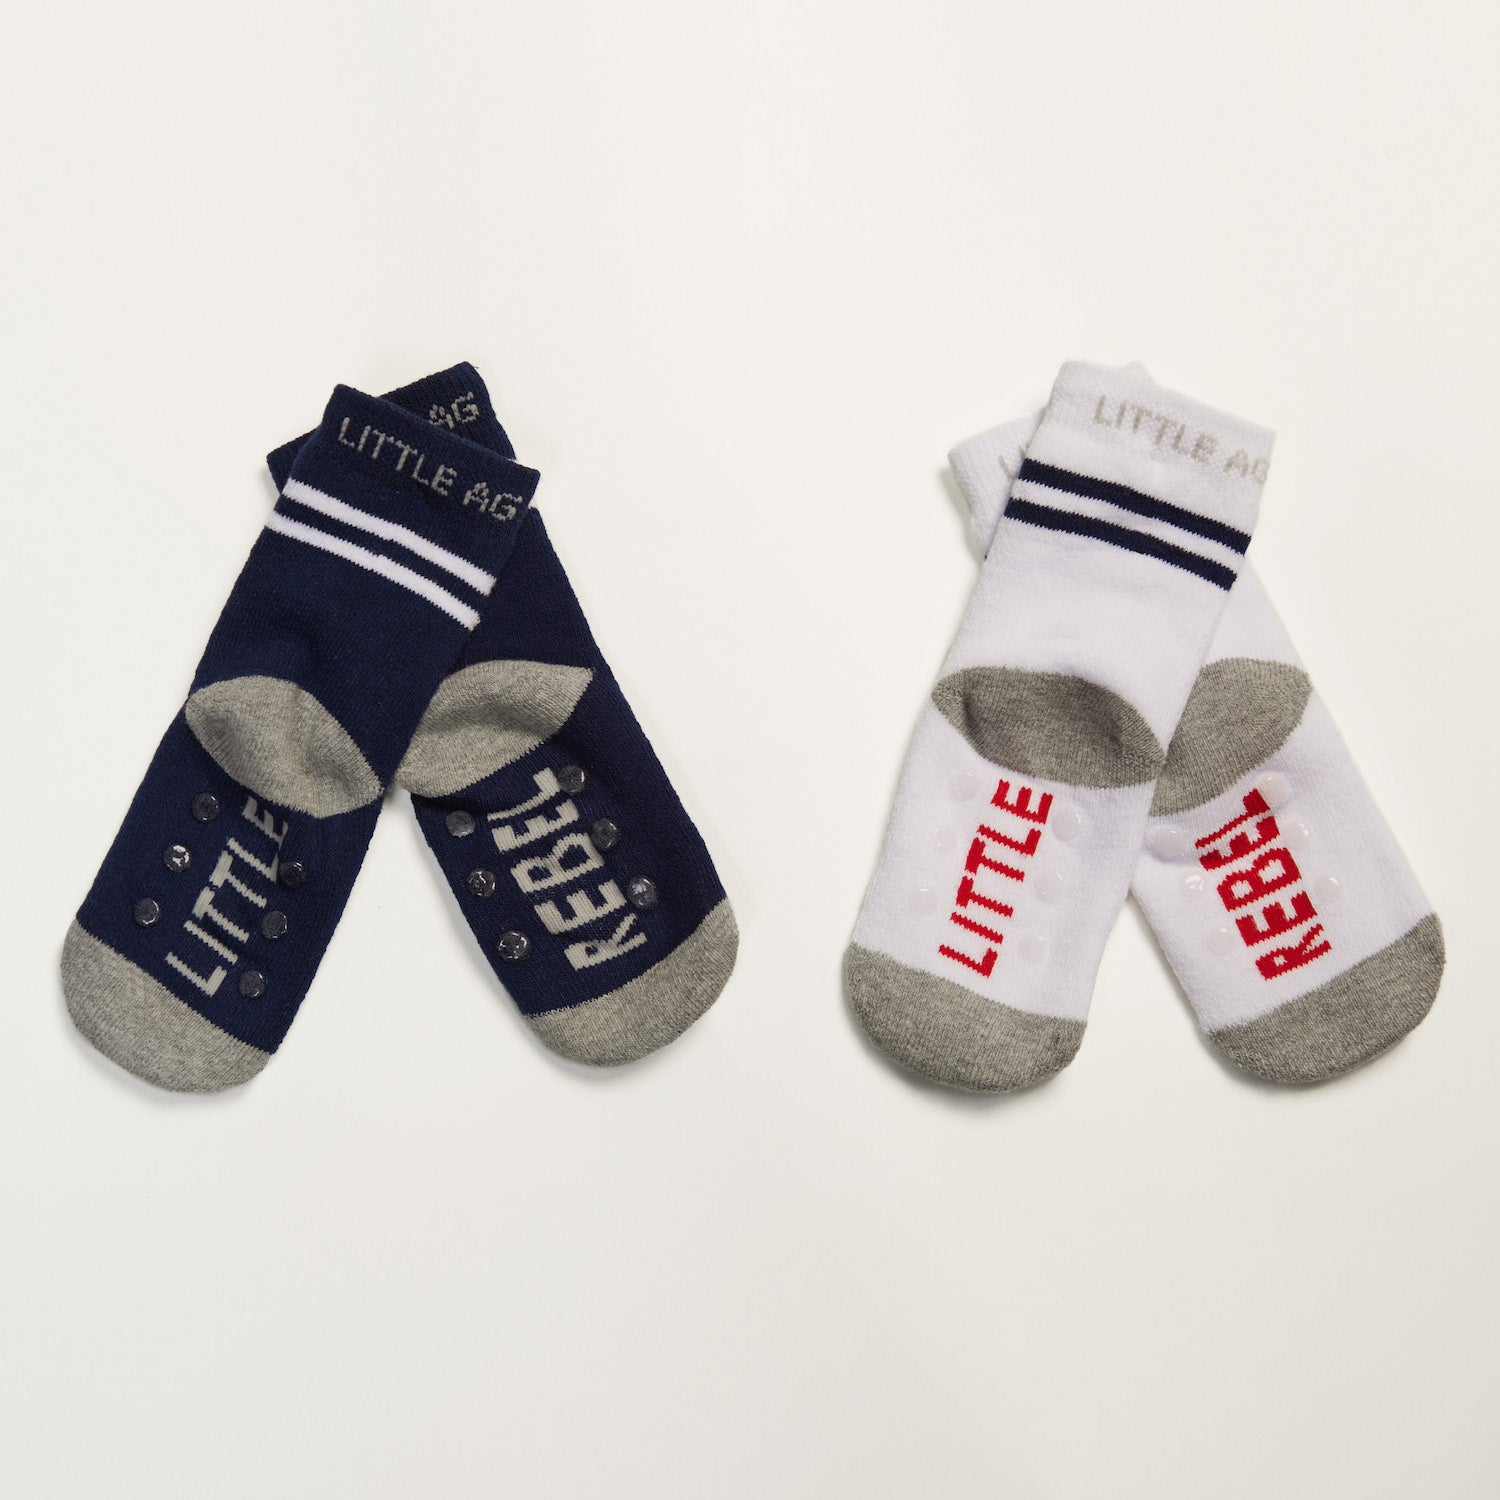 Little Rebel kids socks two pack bottom back view crossed